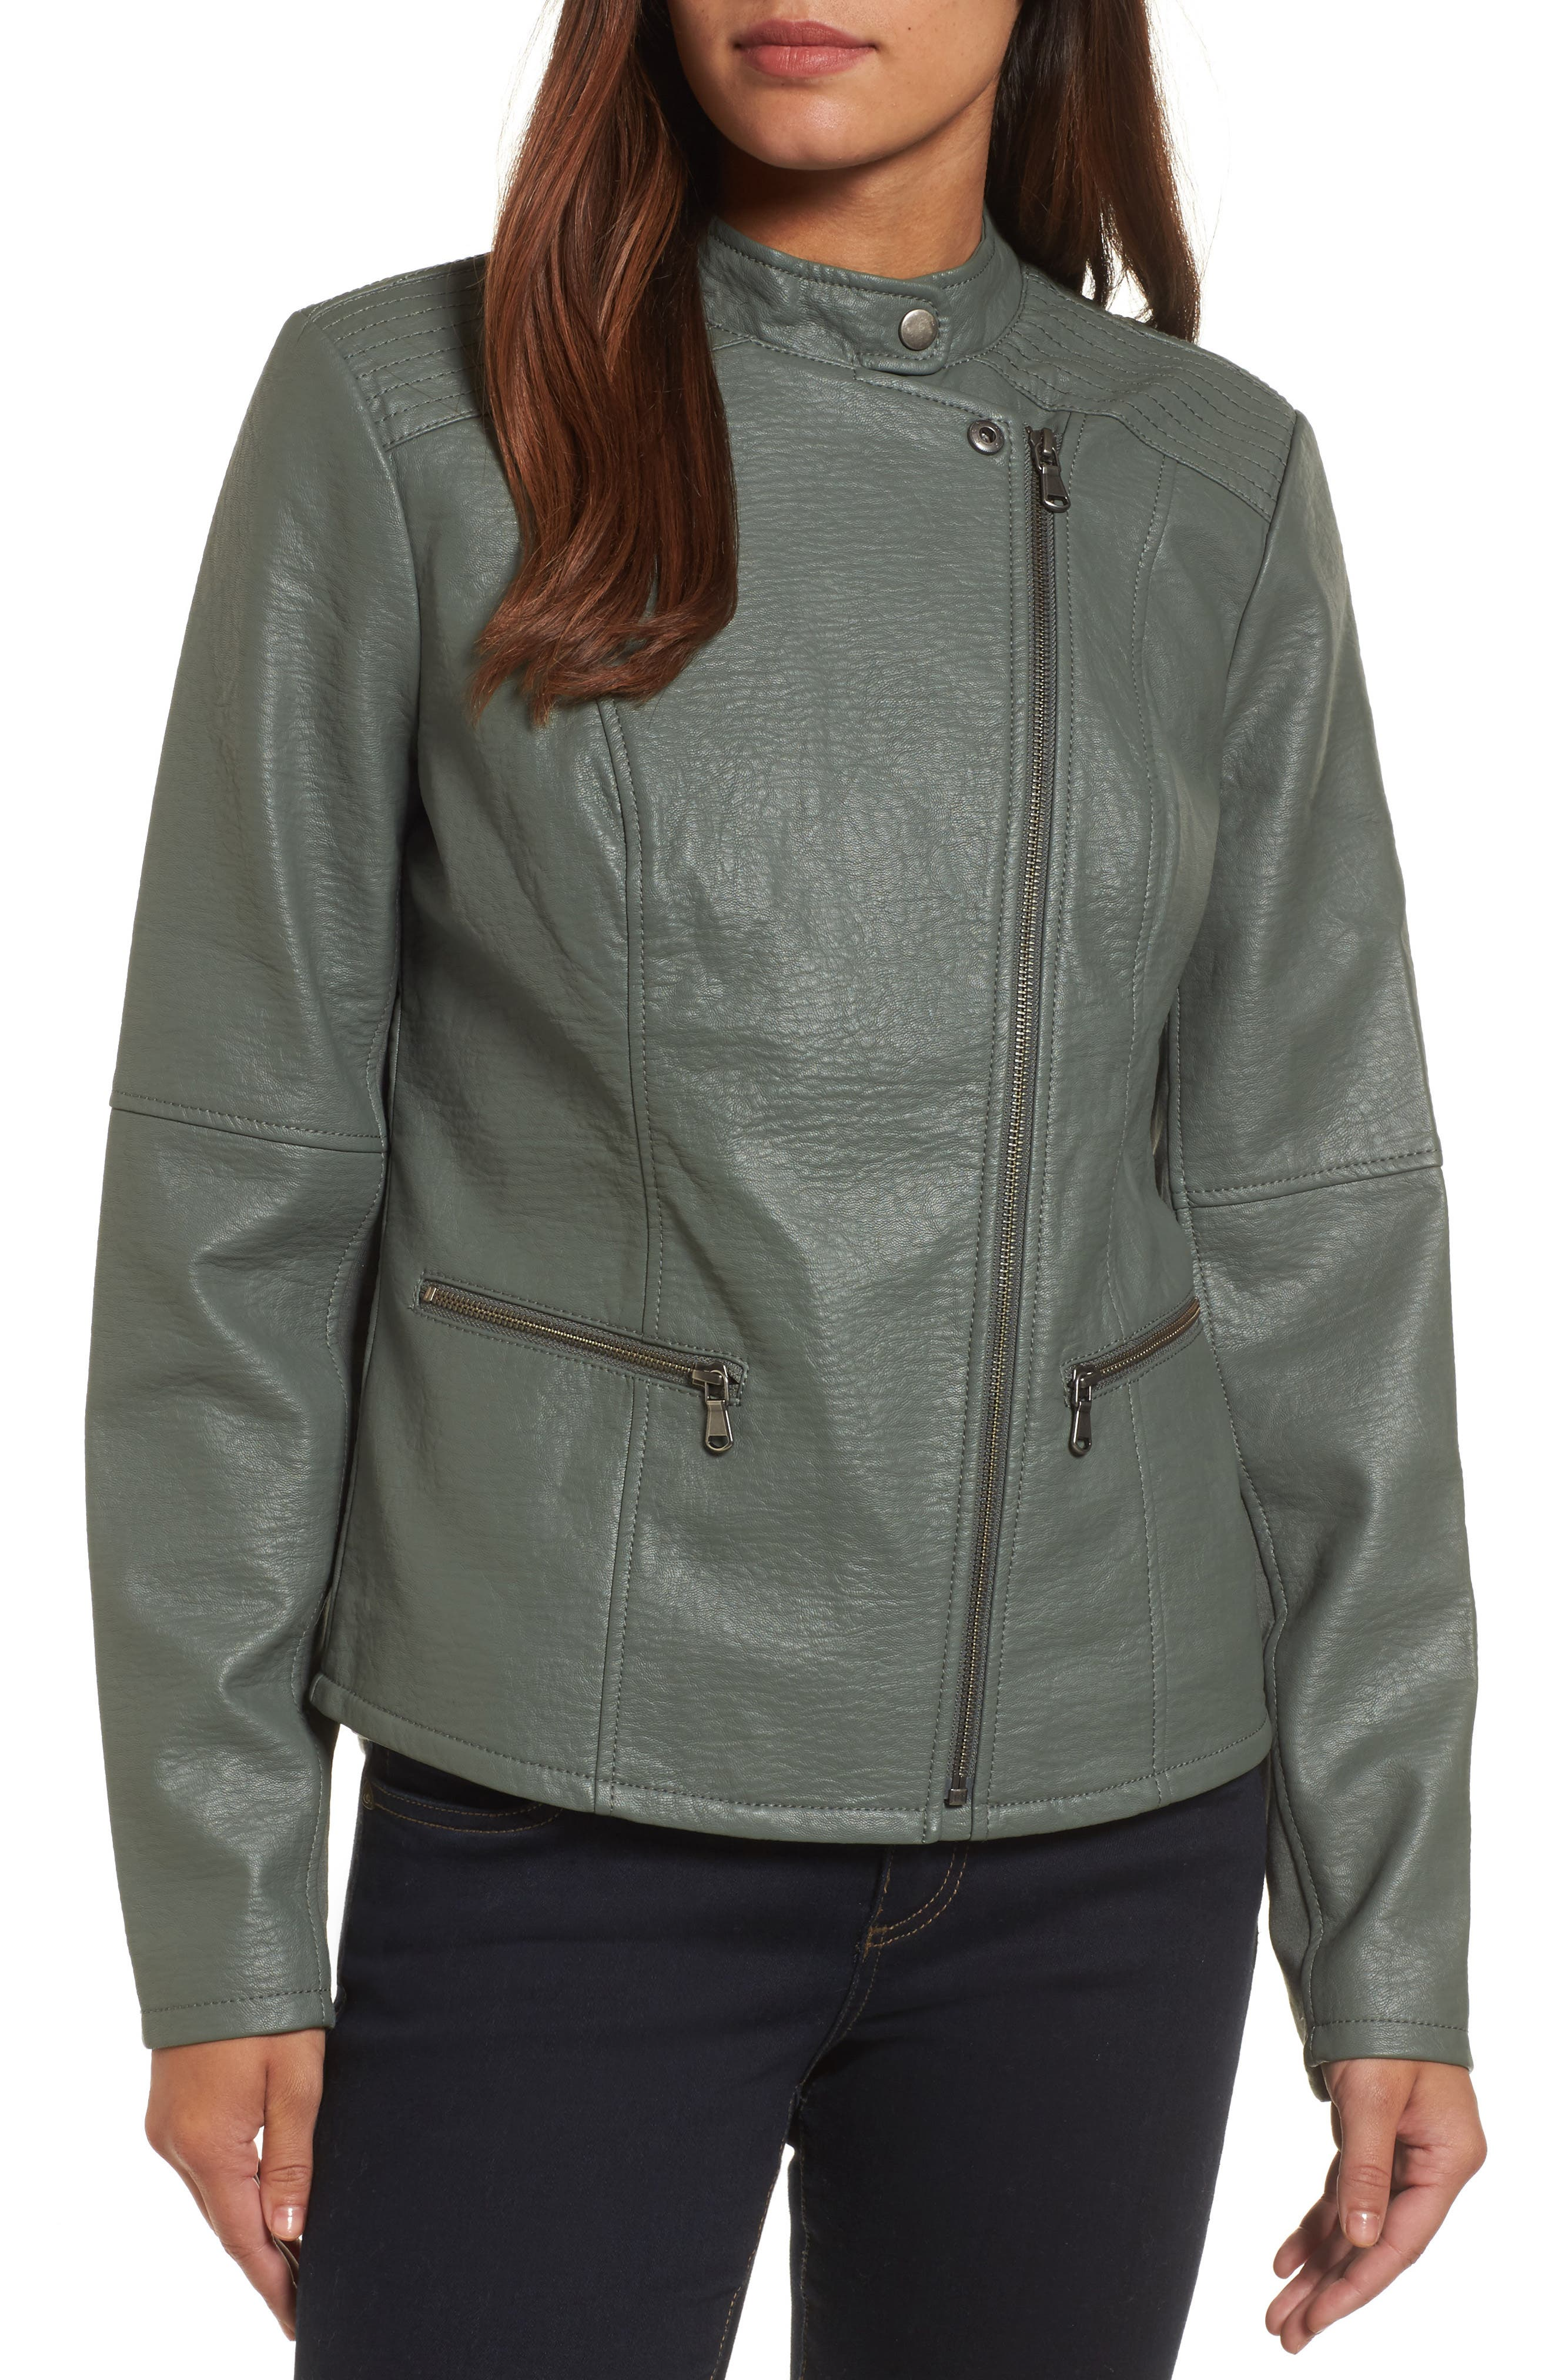 City Chic Faux Leather Jacket,                             Alternate thumbnail 4, color,                             374